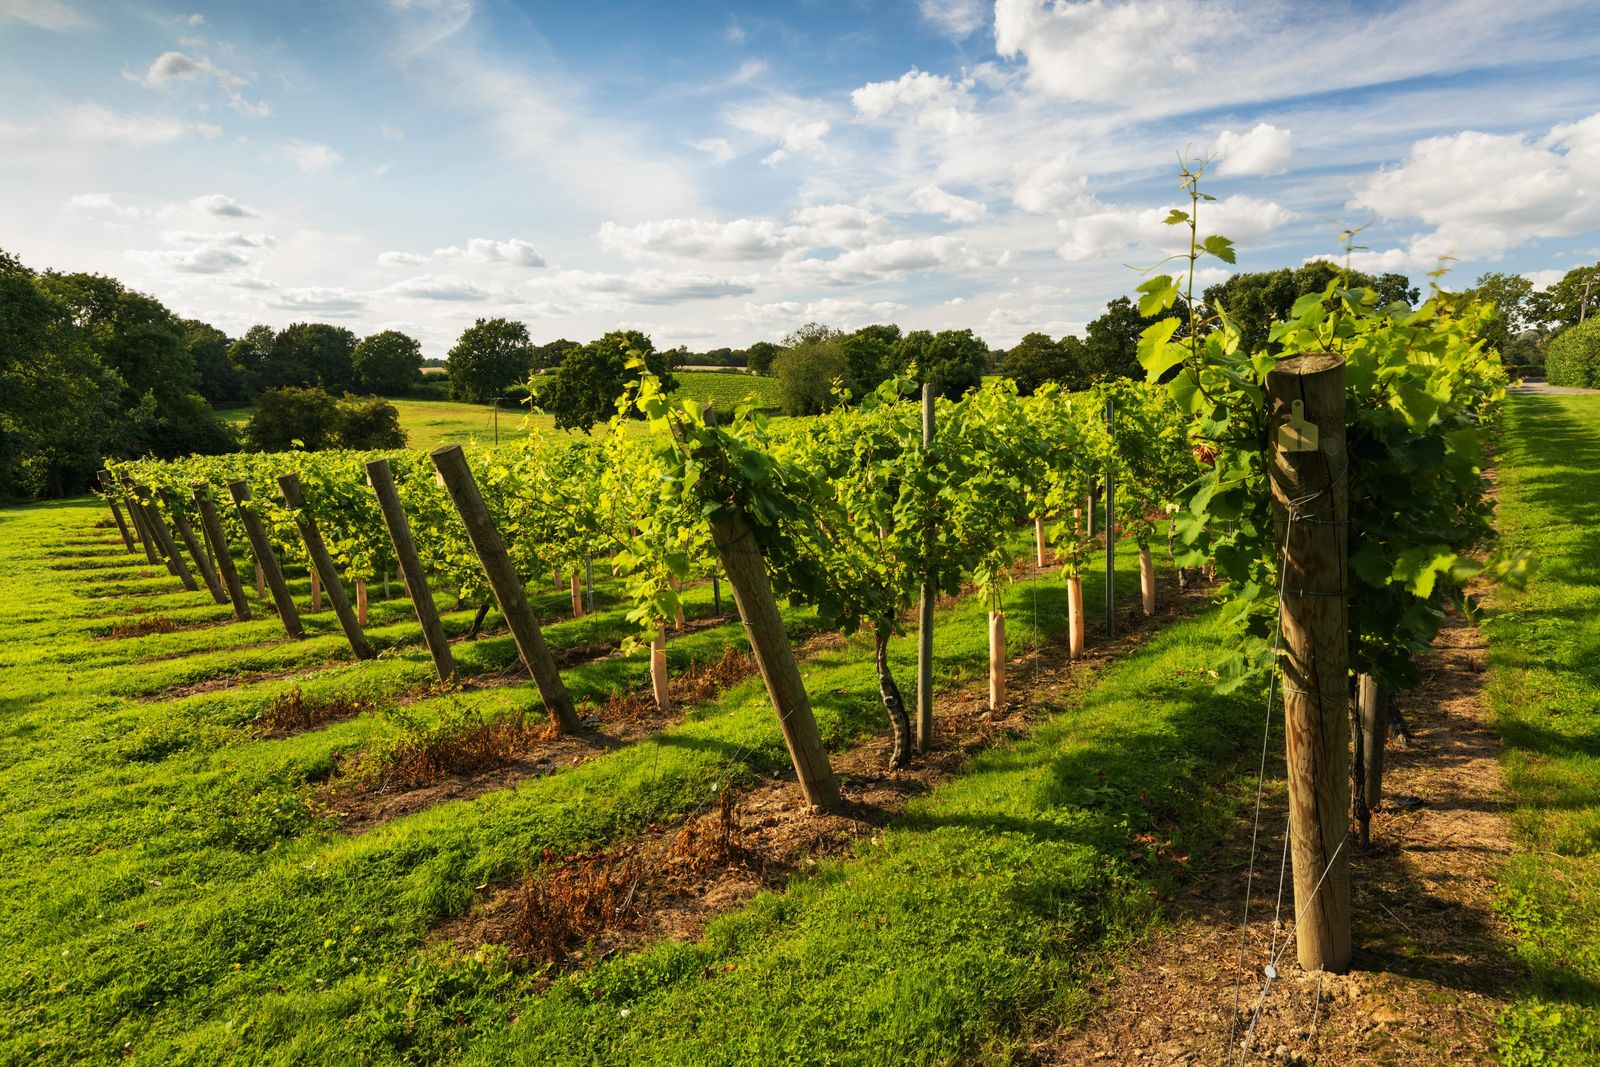 A vineyard in the Kent countryside. Despite vineyards now being widespread across England and Wales and numbering ...